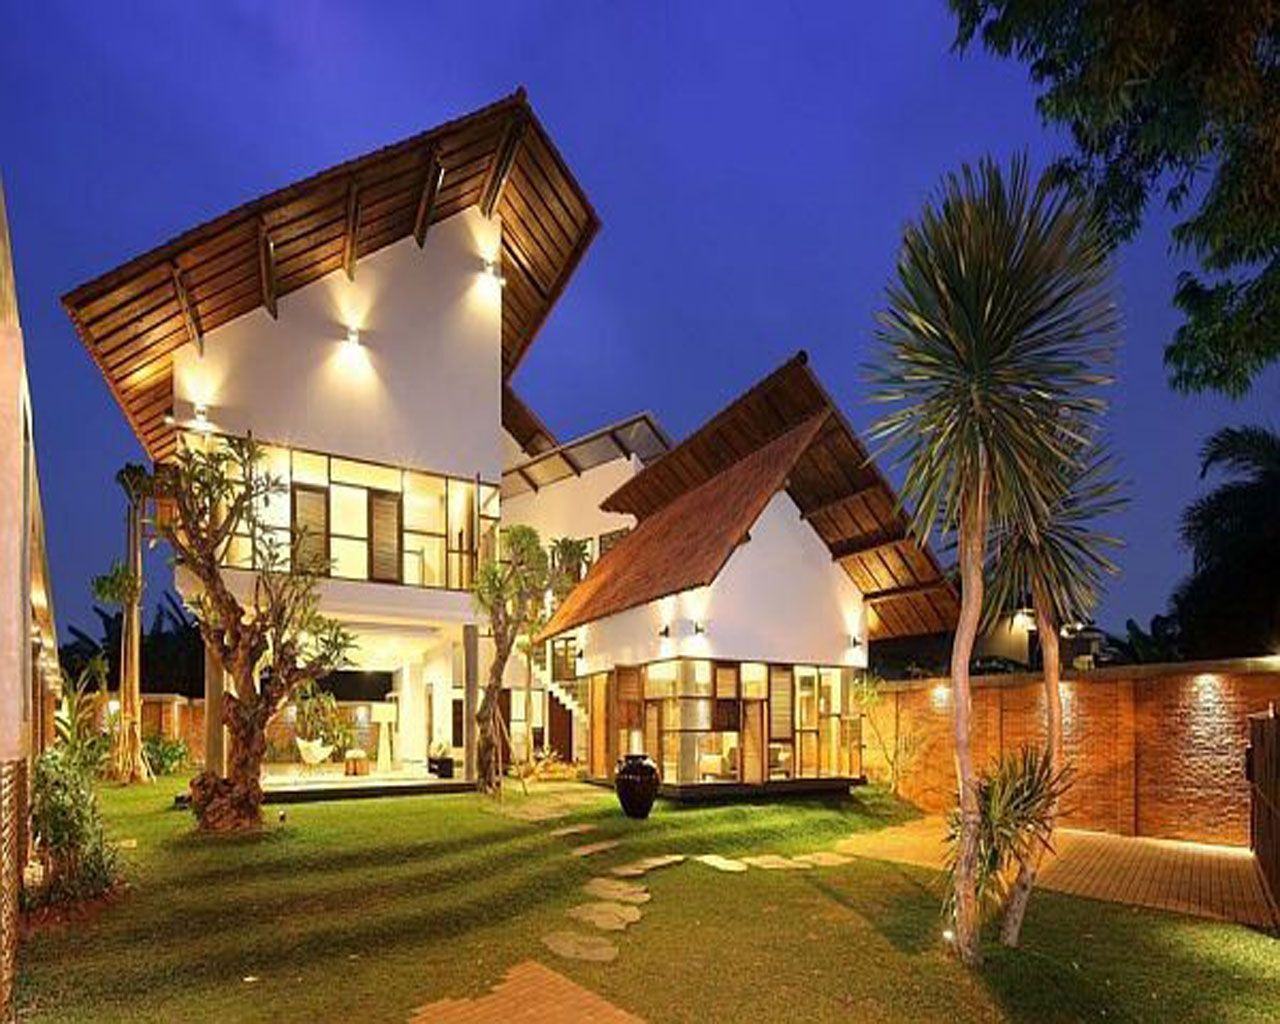 Architecture ideas 30 inspiration tropical house design for Design architecture house